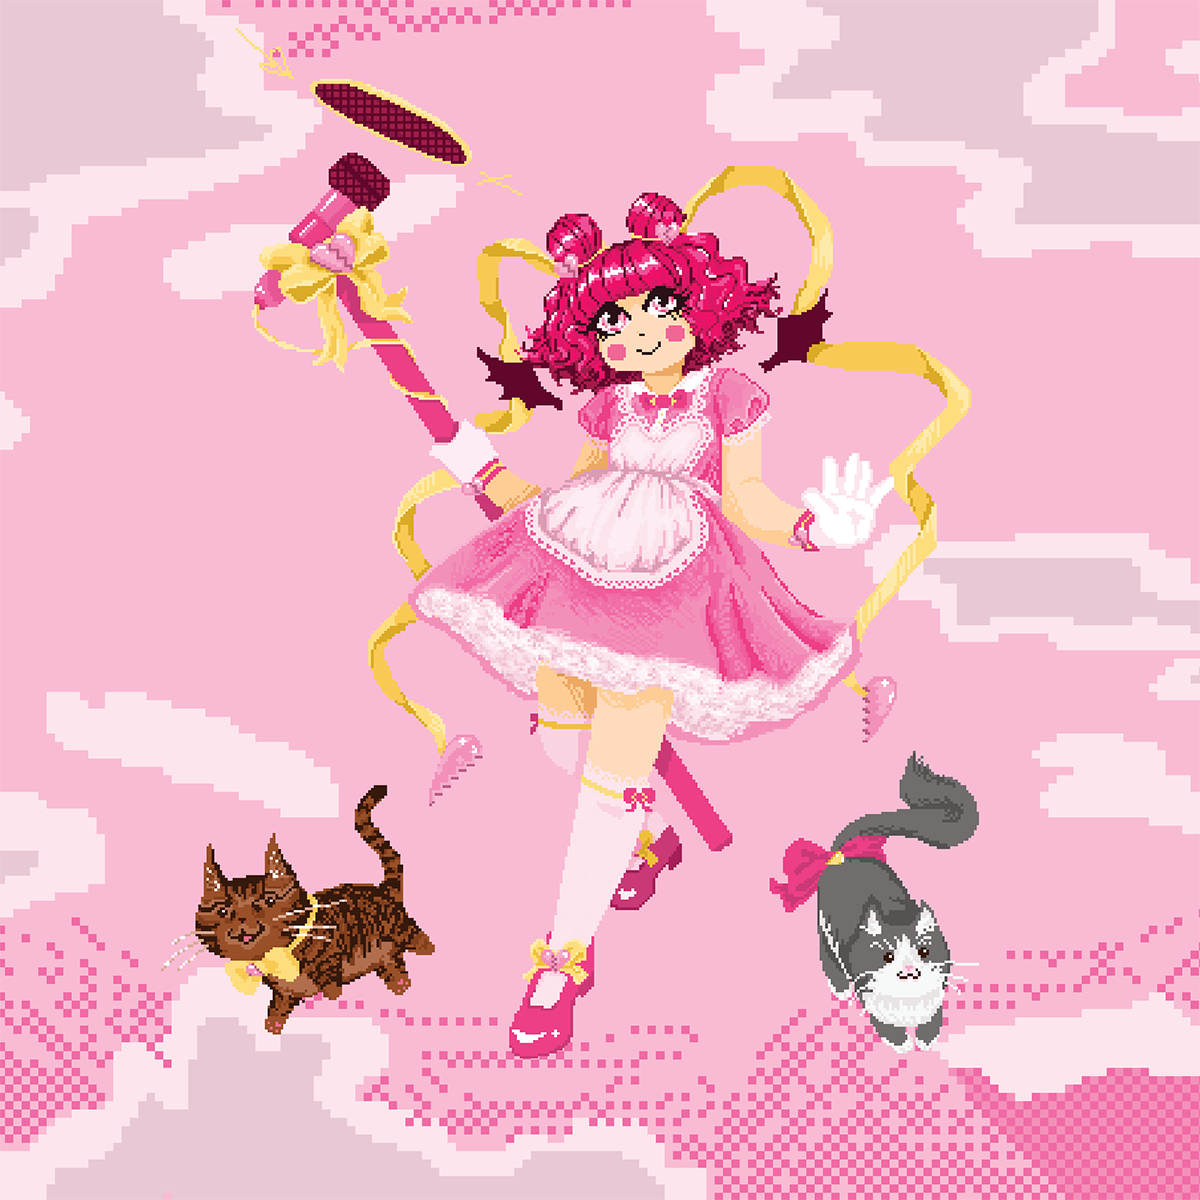 pixel art illustration of magical girl, pink dress, hear, shoes; yellow ribbons; two cats